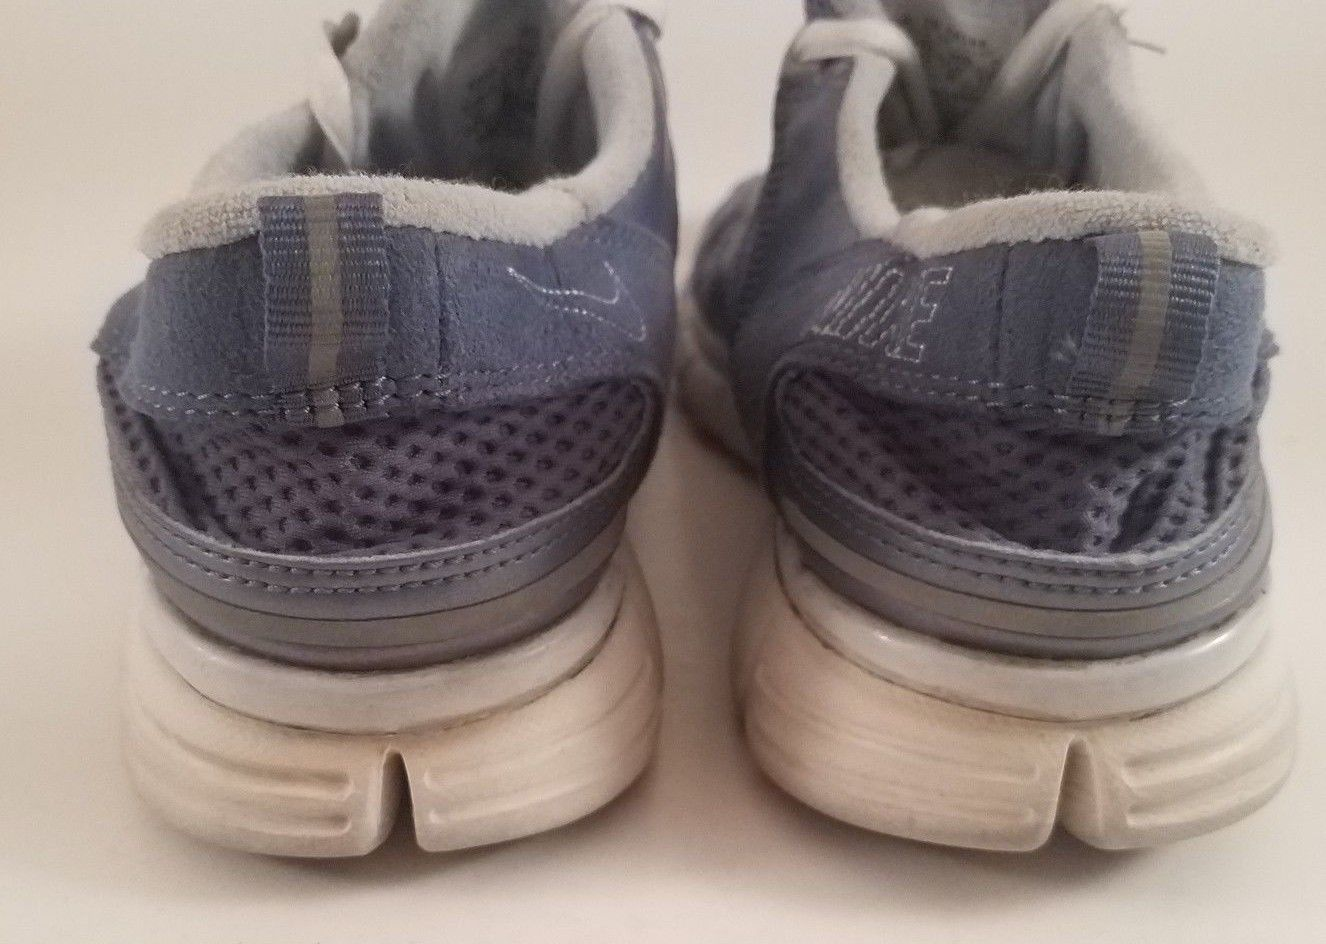 the best attitude a0557 e6b28 ... Nike Free Flyknit Dark Blue and Grey Foil Wolf Shoes for Women Size US  10 ...